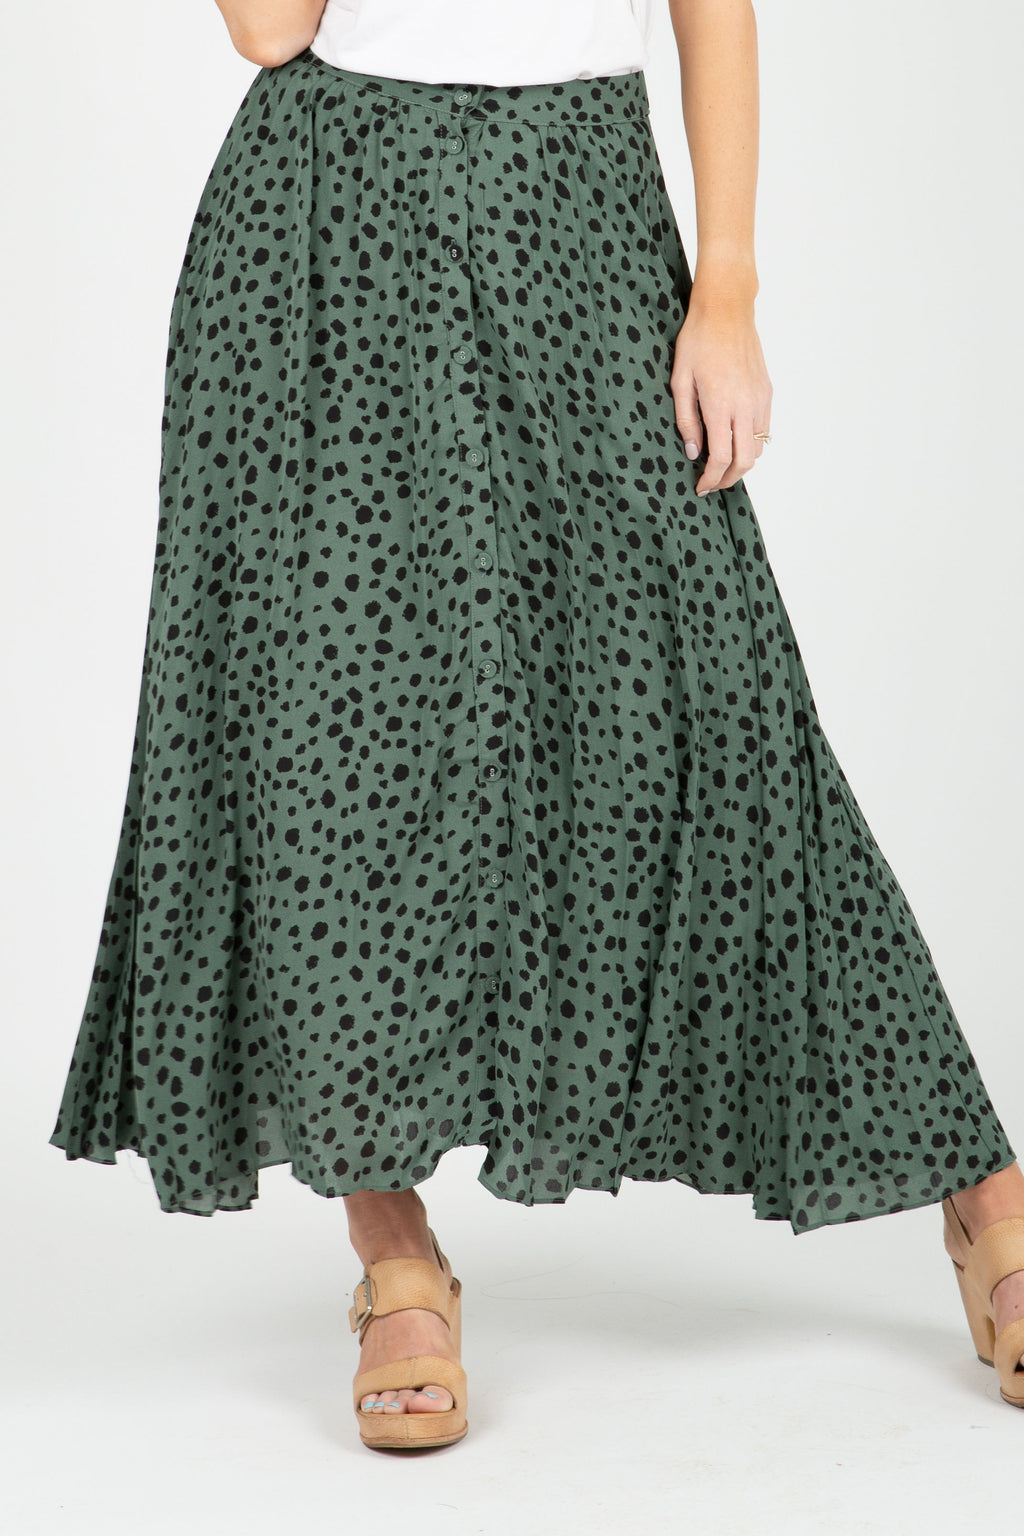 The Fletcher Dot Midi Skirt in Green, studio shoot; front view